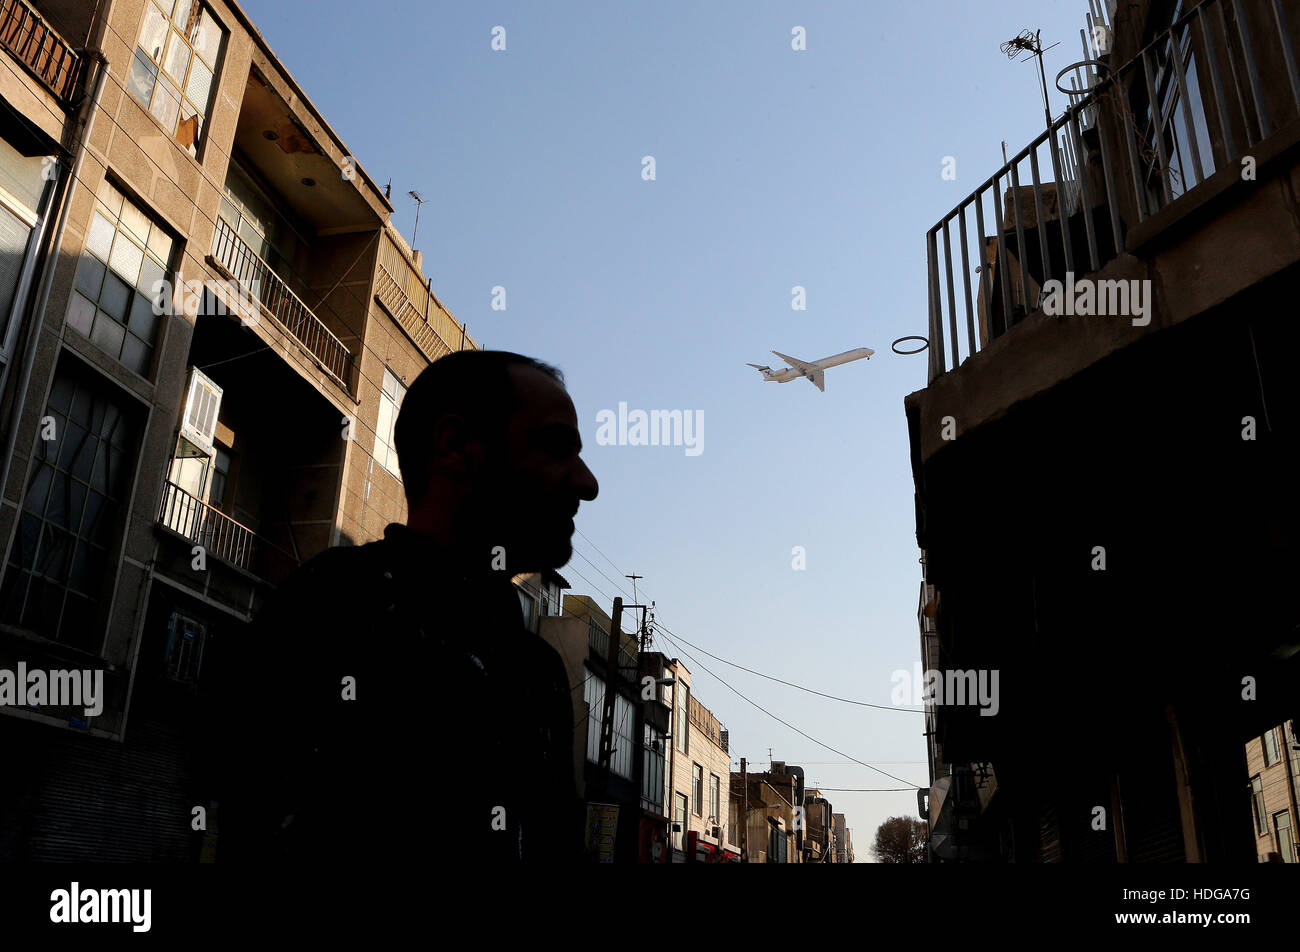 Tehran. 12th Dec, 2016. Photo taken on Dec. 12, 2016 shows an airplane of Iran Air flying over Tehran, capital of - Stock Image